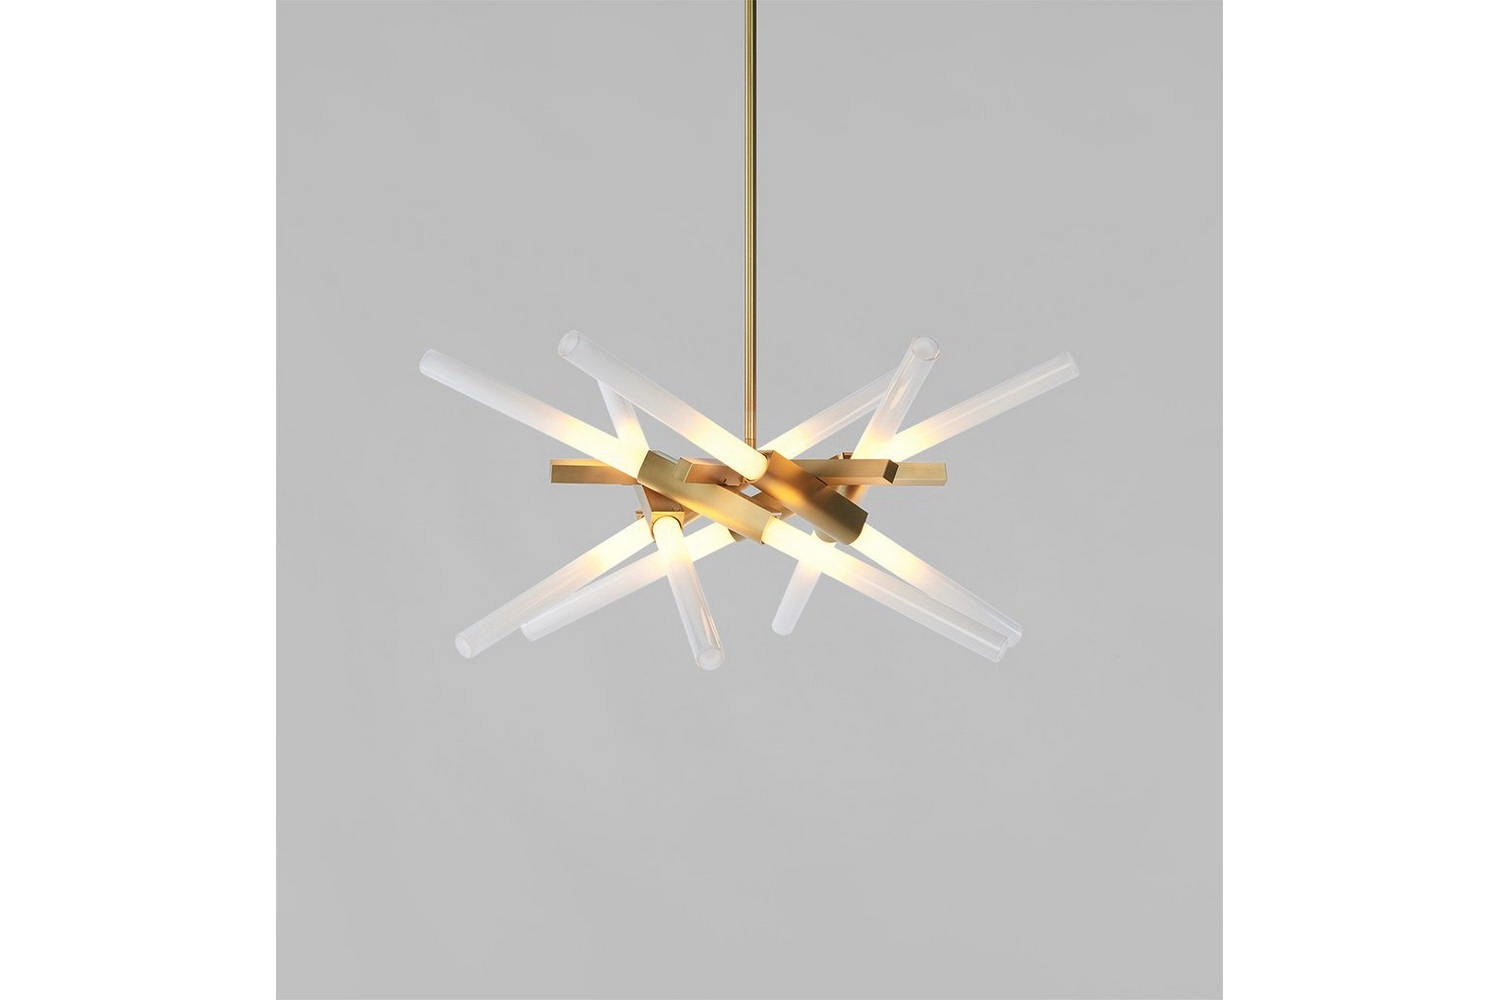 Astral Agnes 01 - 12 Lights by Lindsey Adams Adelman for Roll & Hill